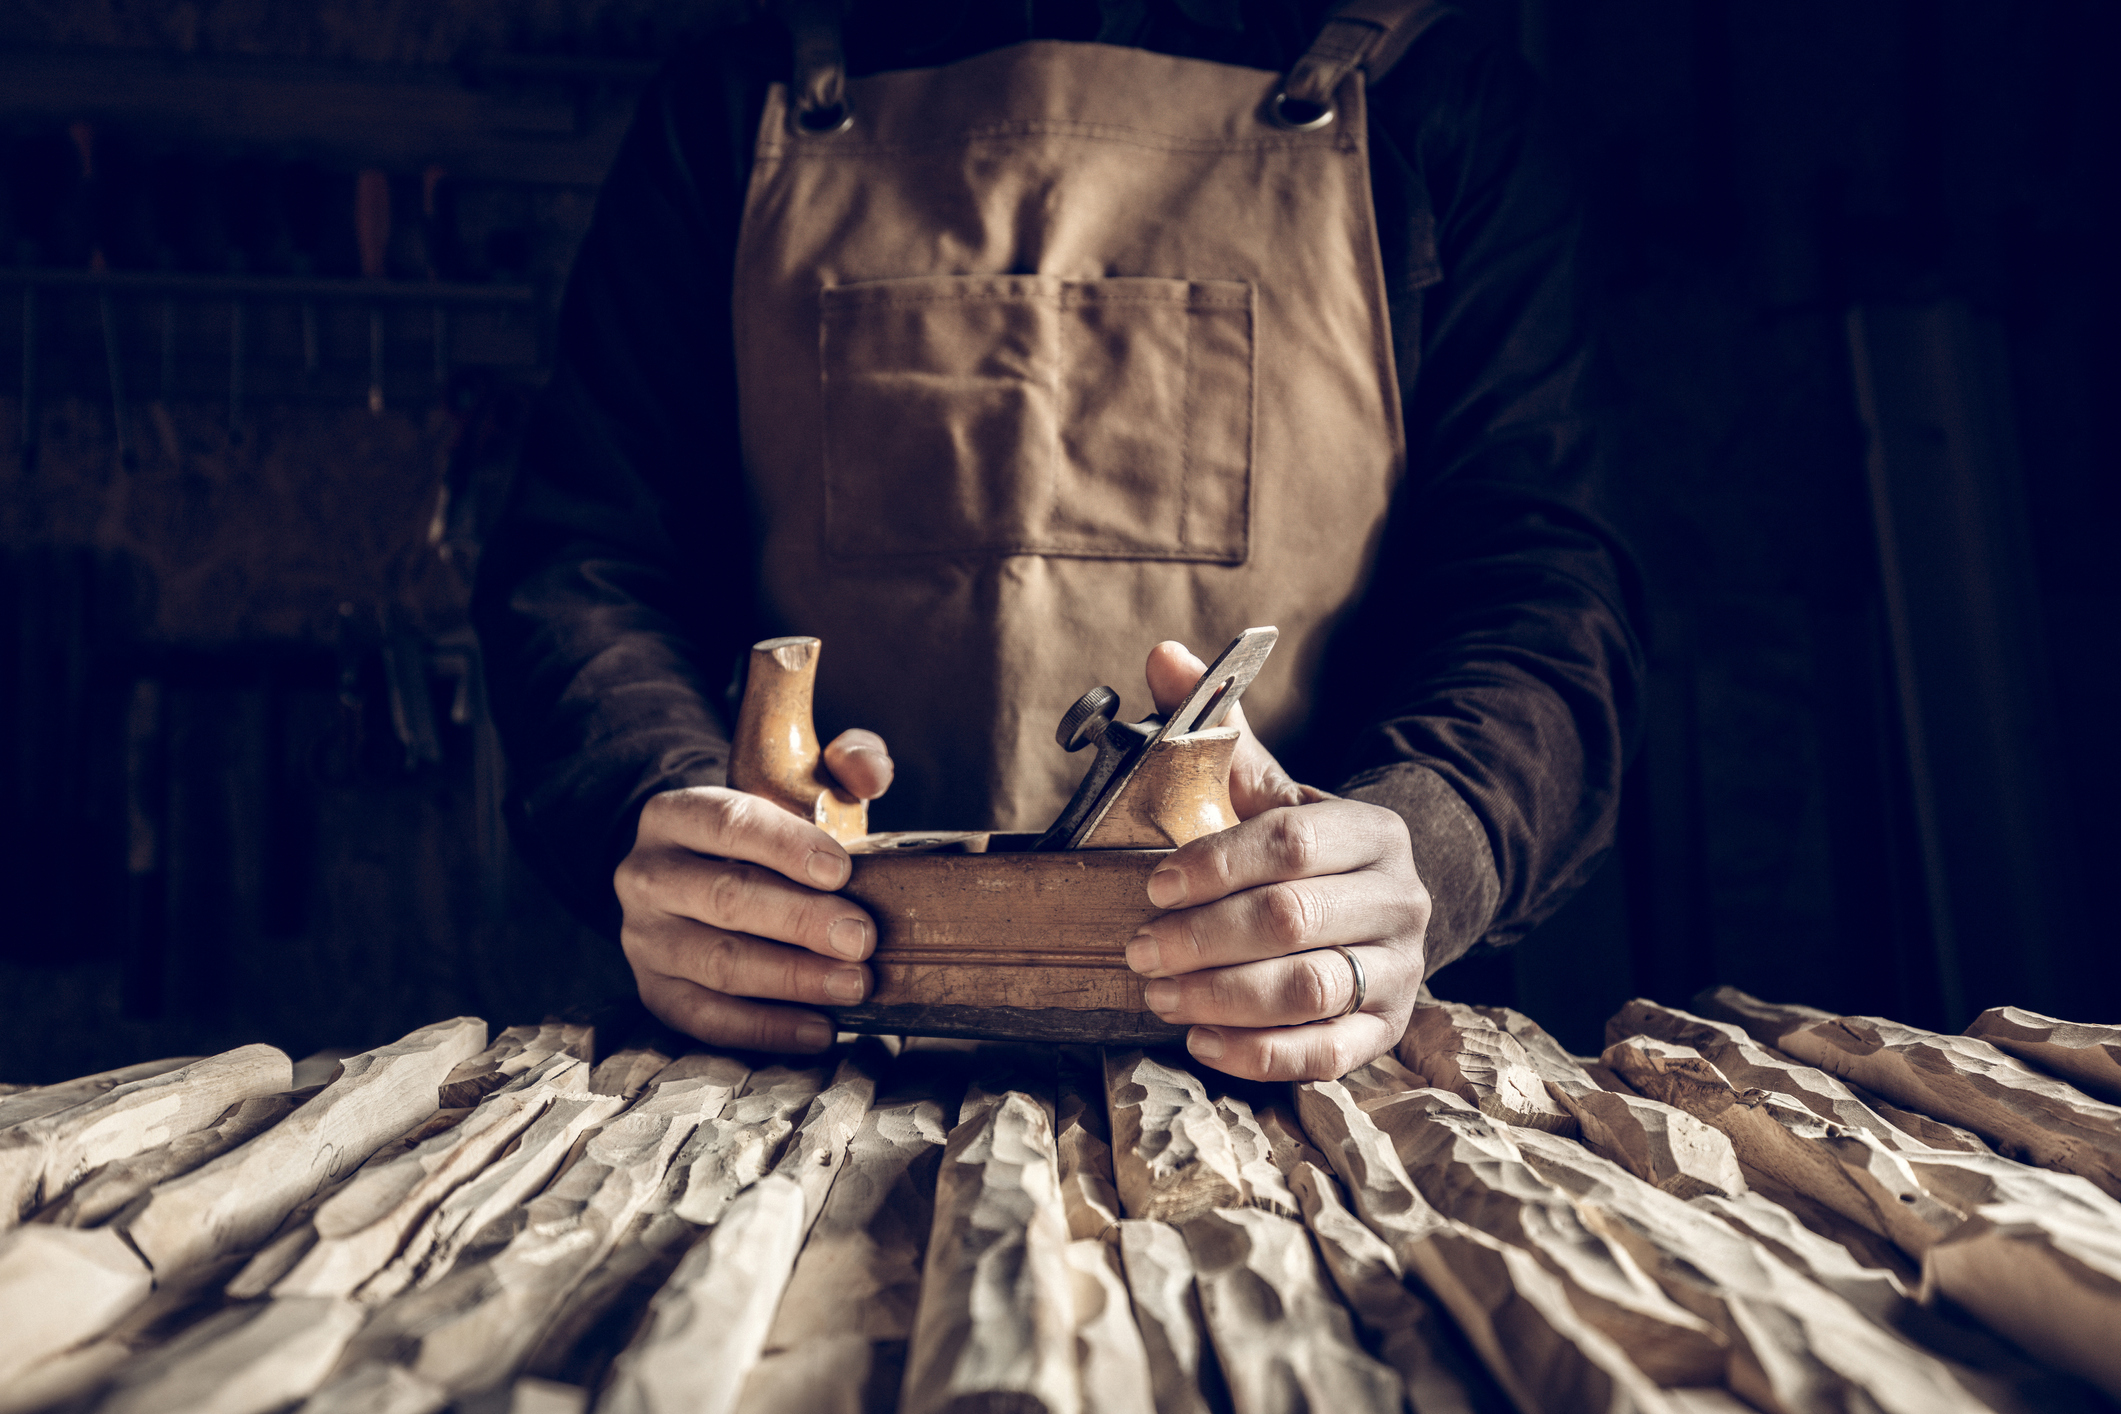 Primitive Crafts and Survival Skills for Uncertain Times